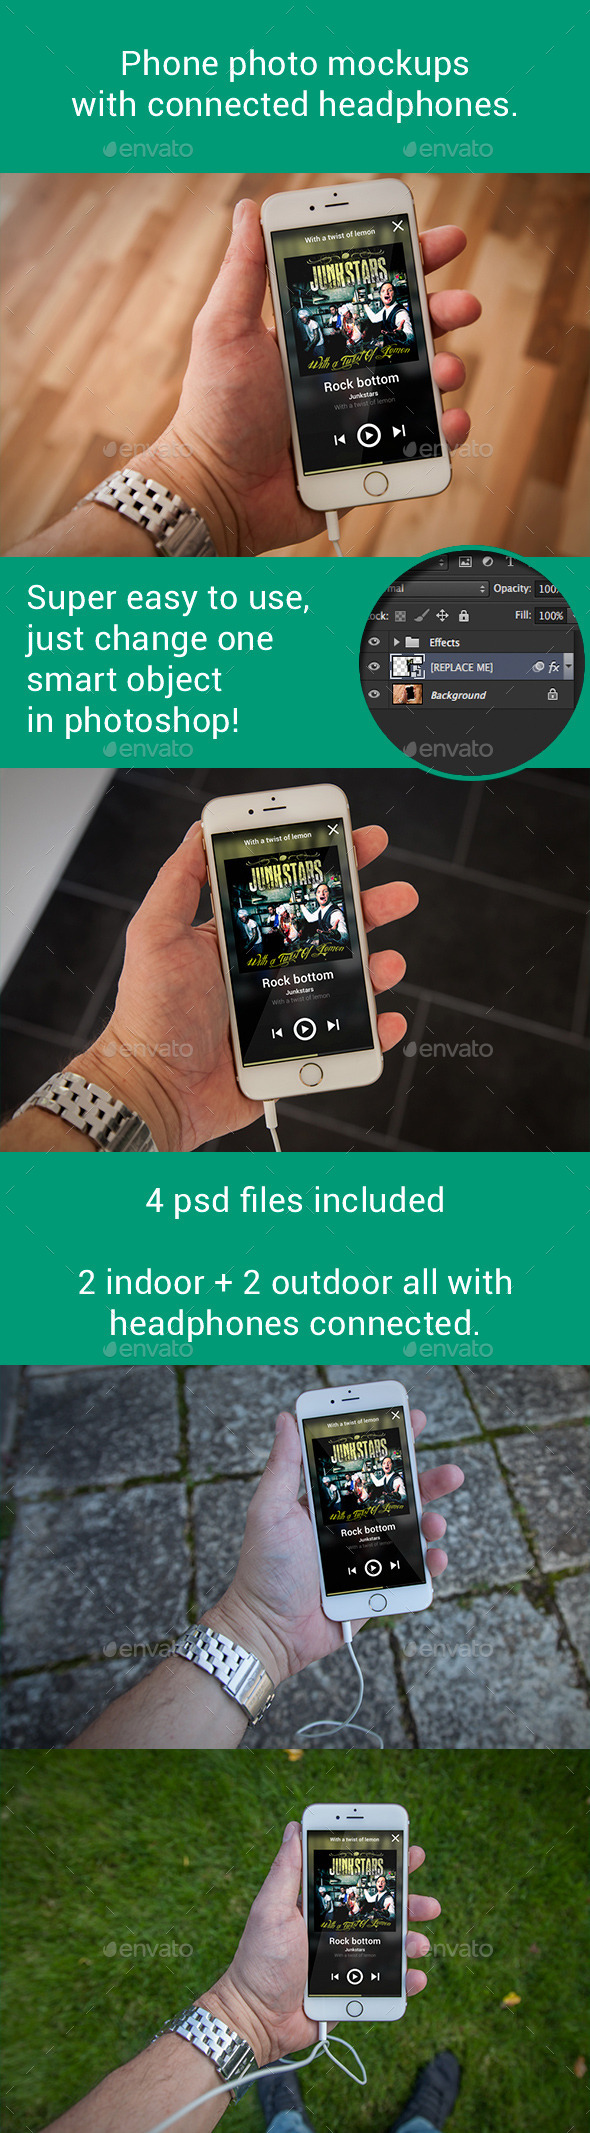 Phone 6 Photo Mockups With Connected Headphones - Mobile Displays